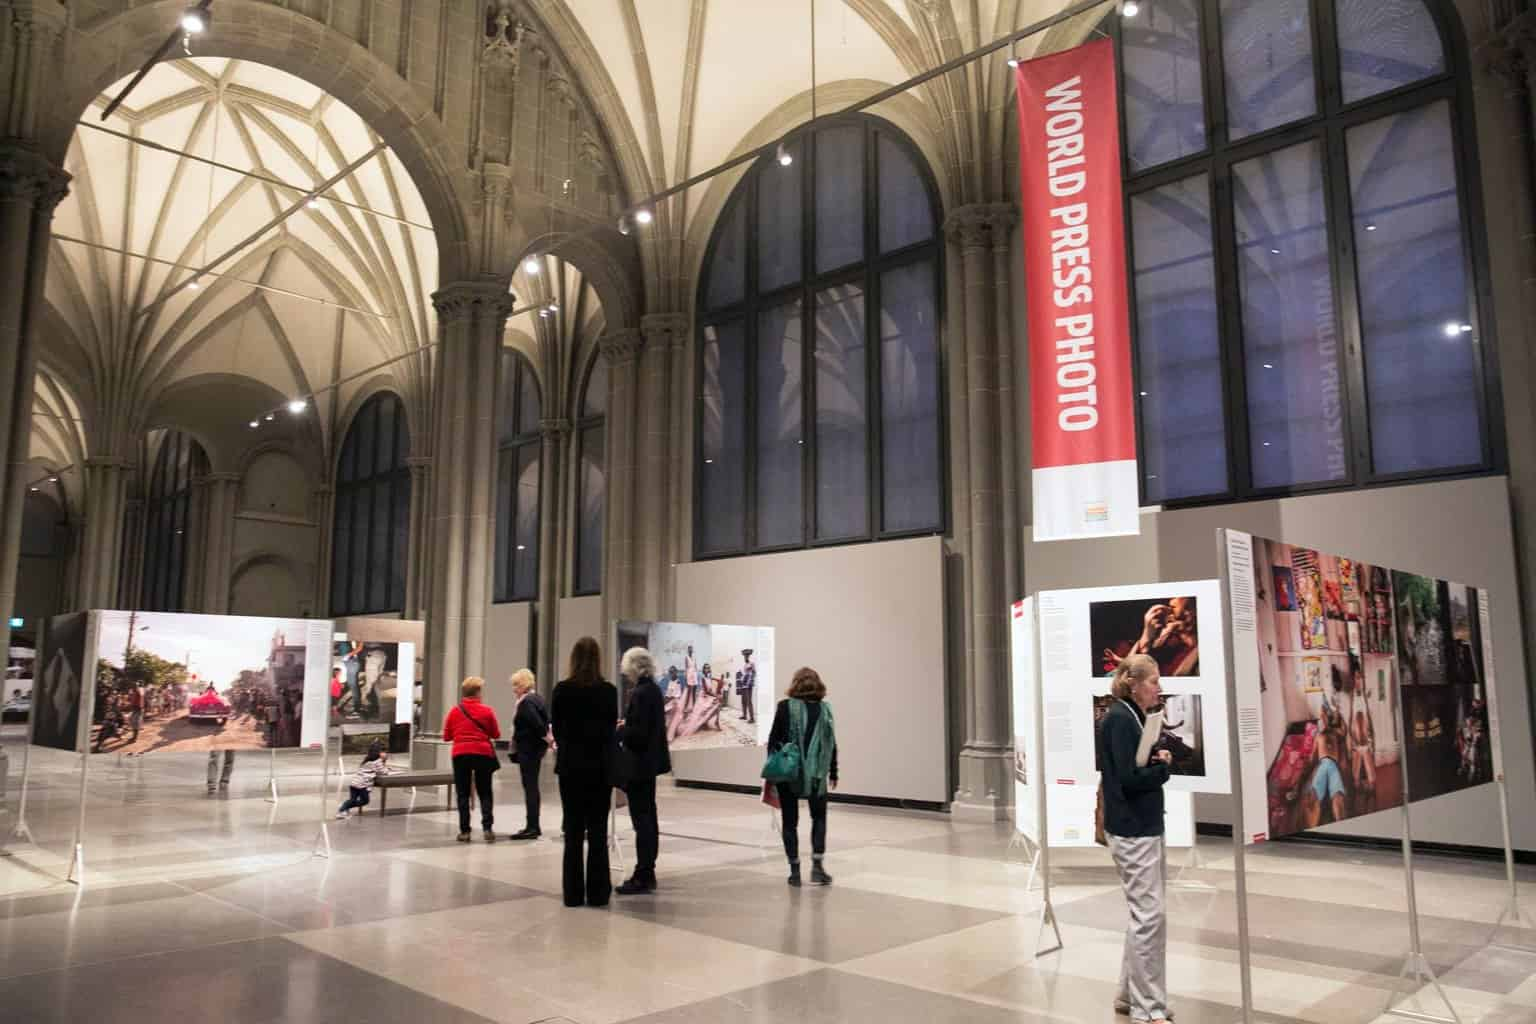 Swiss Press Photo 19 & World Press Photo 19 Landesmuseum Zurich